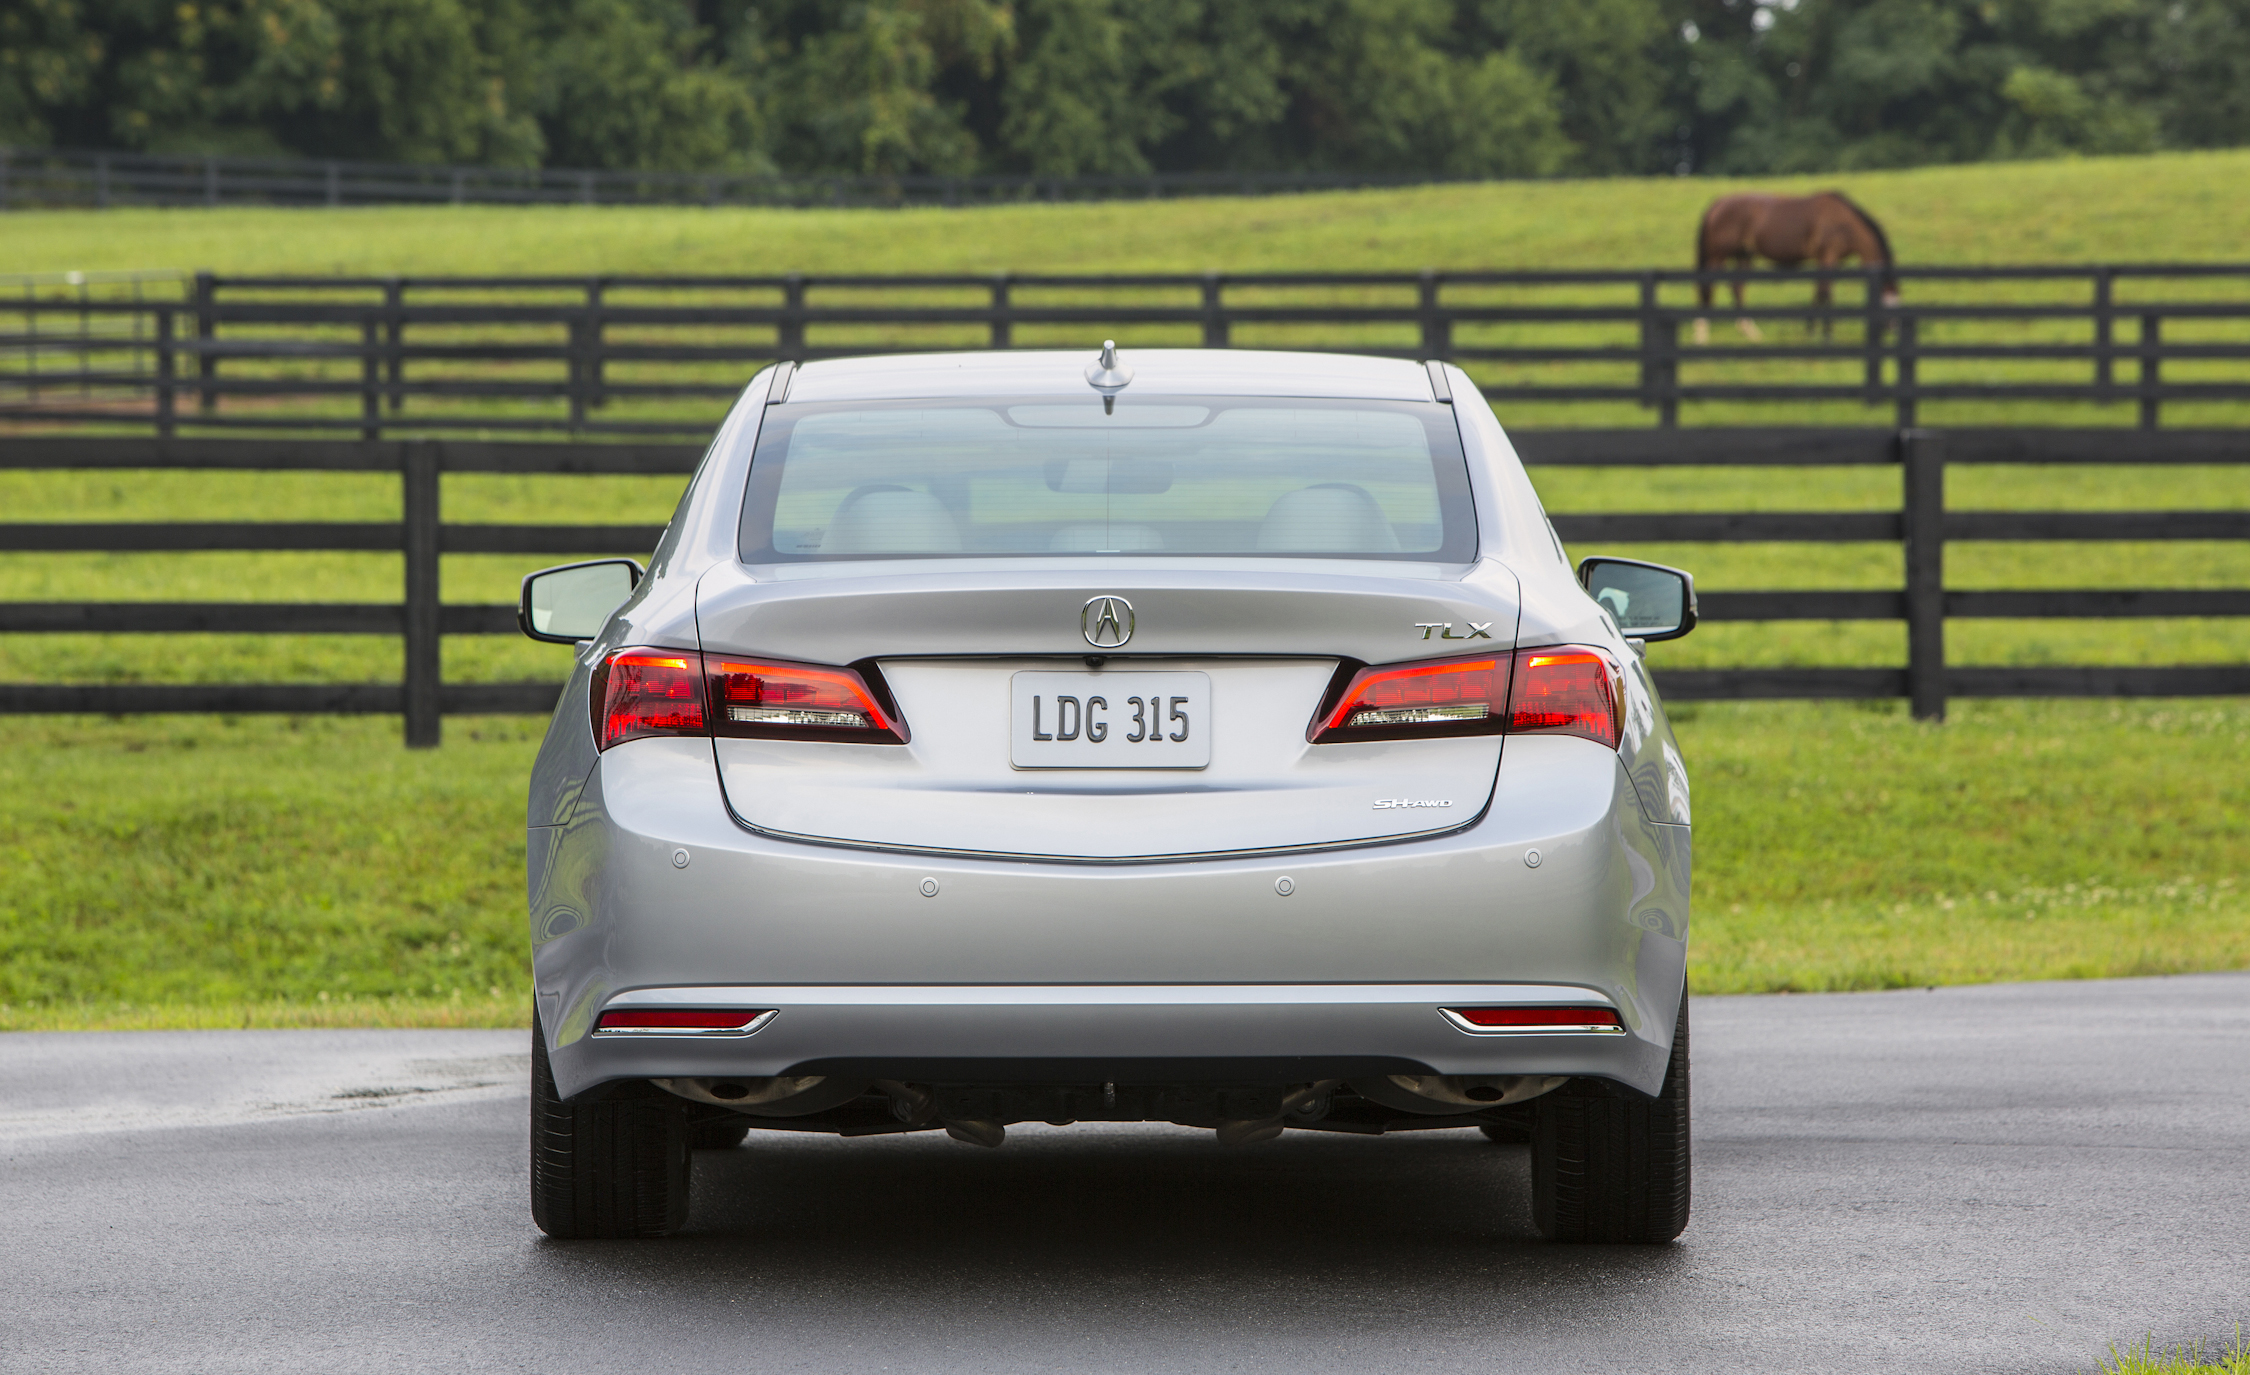 2015 Acura TLX 3.5L SH-AWD Exterior Rear View